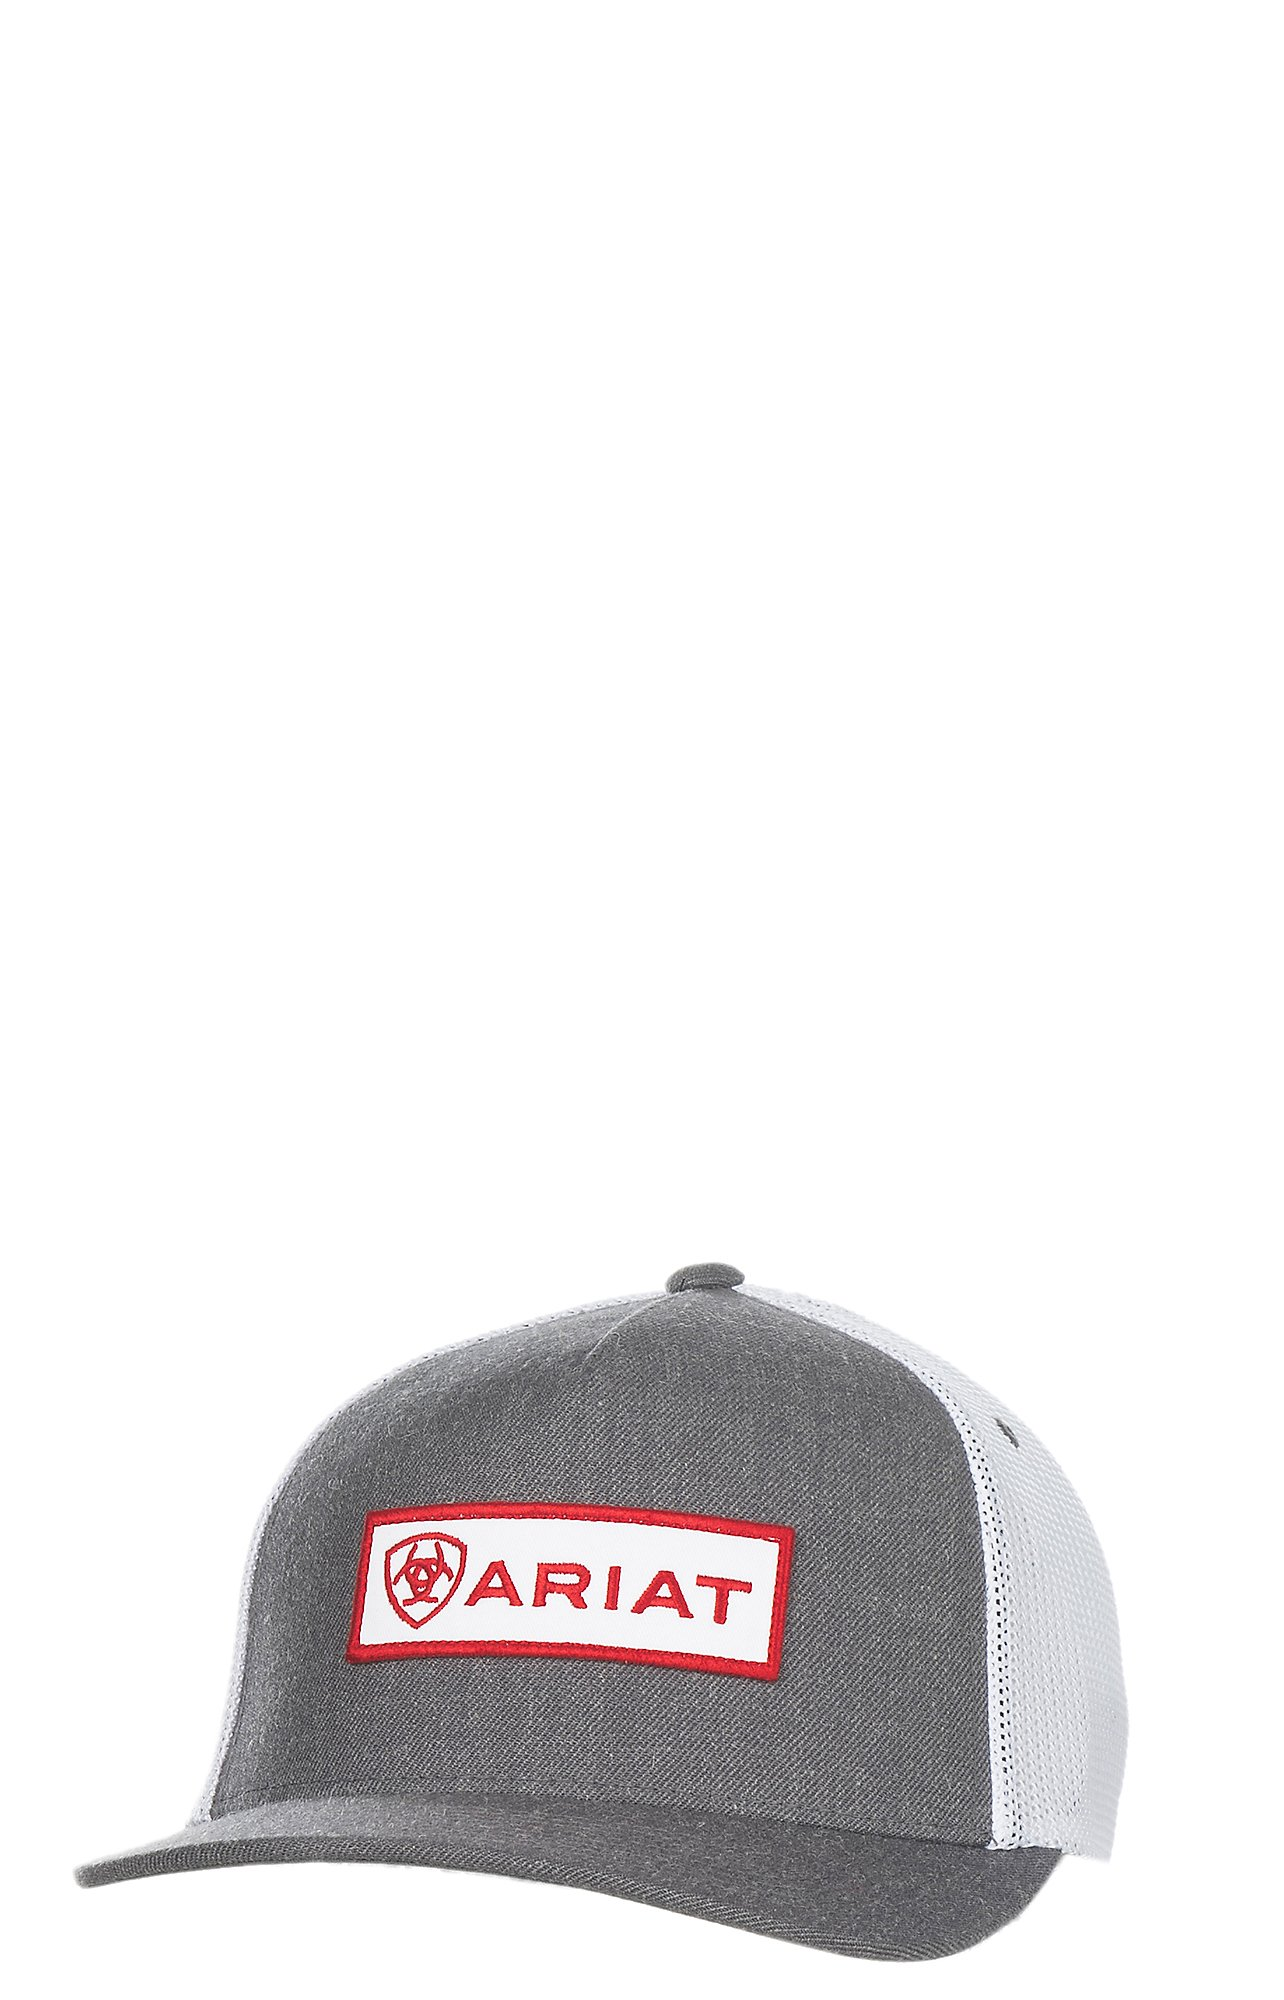 Ariat Grey with Red Patch Logo and Mesh Back Snap Back Cap 5c7ebb6dd7f1